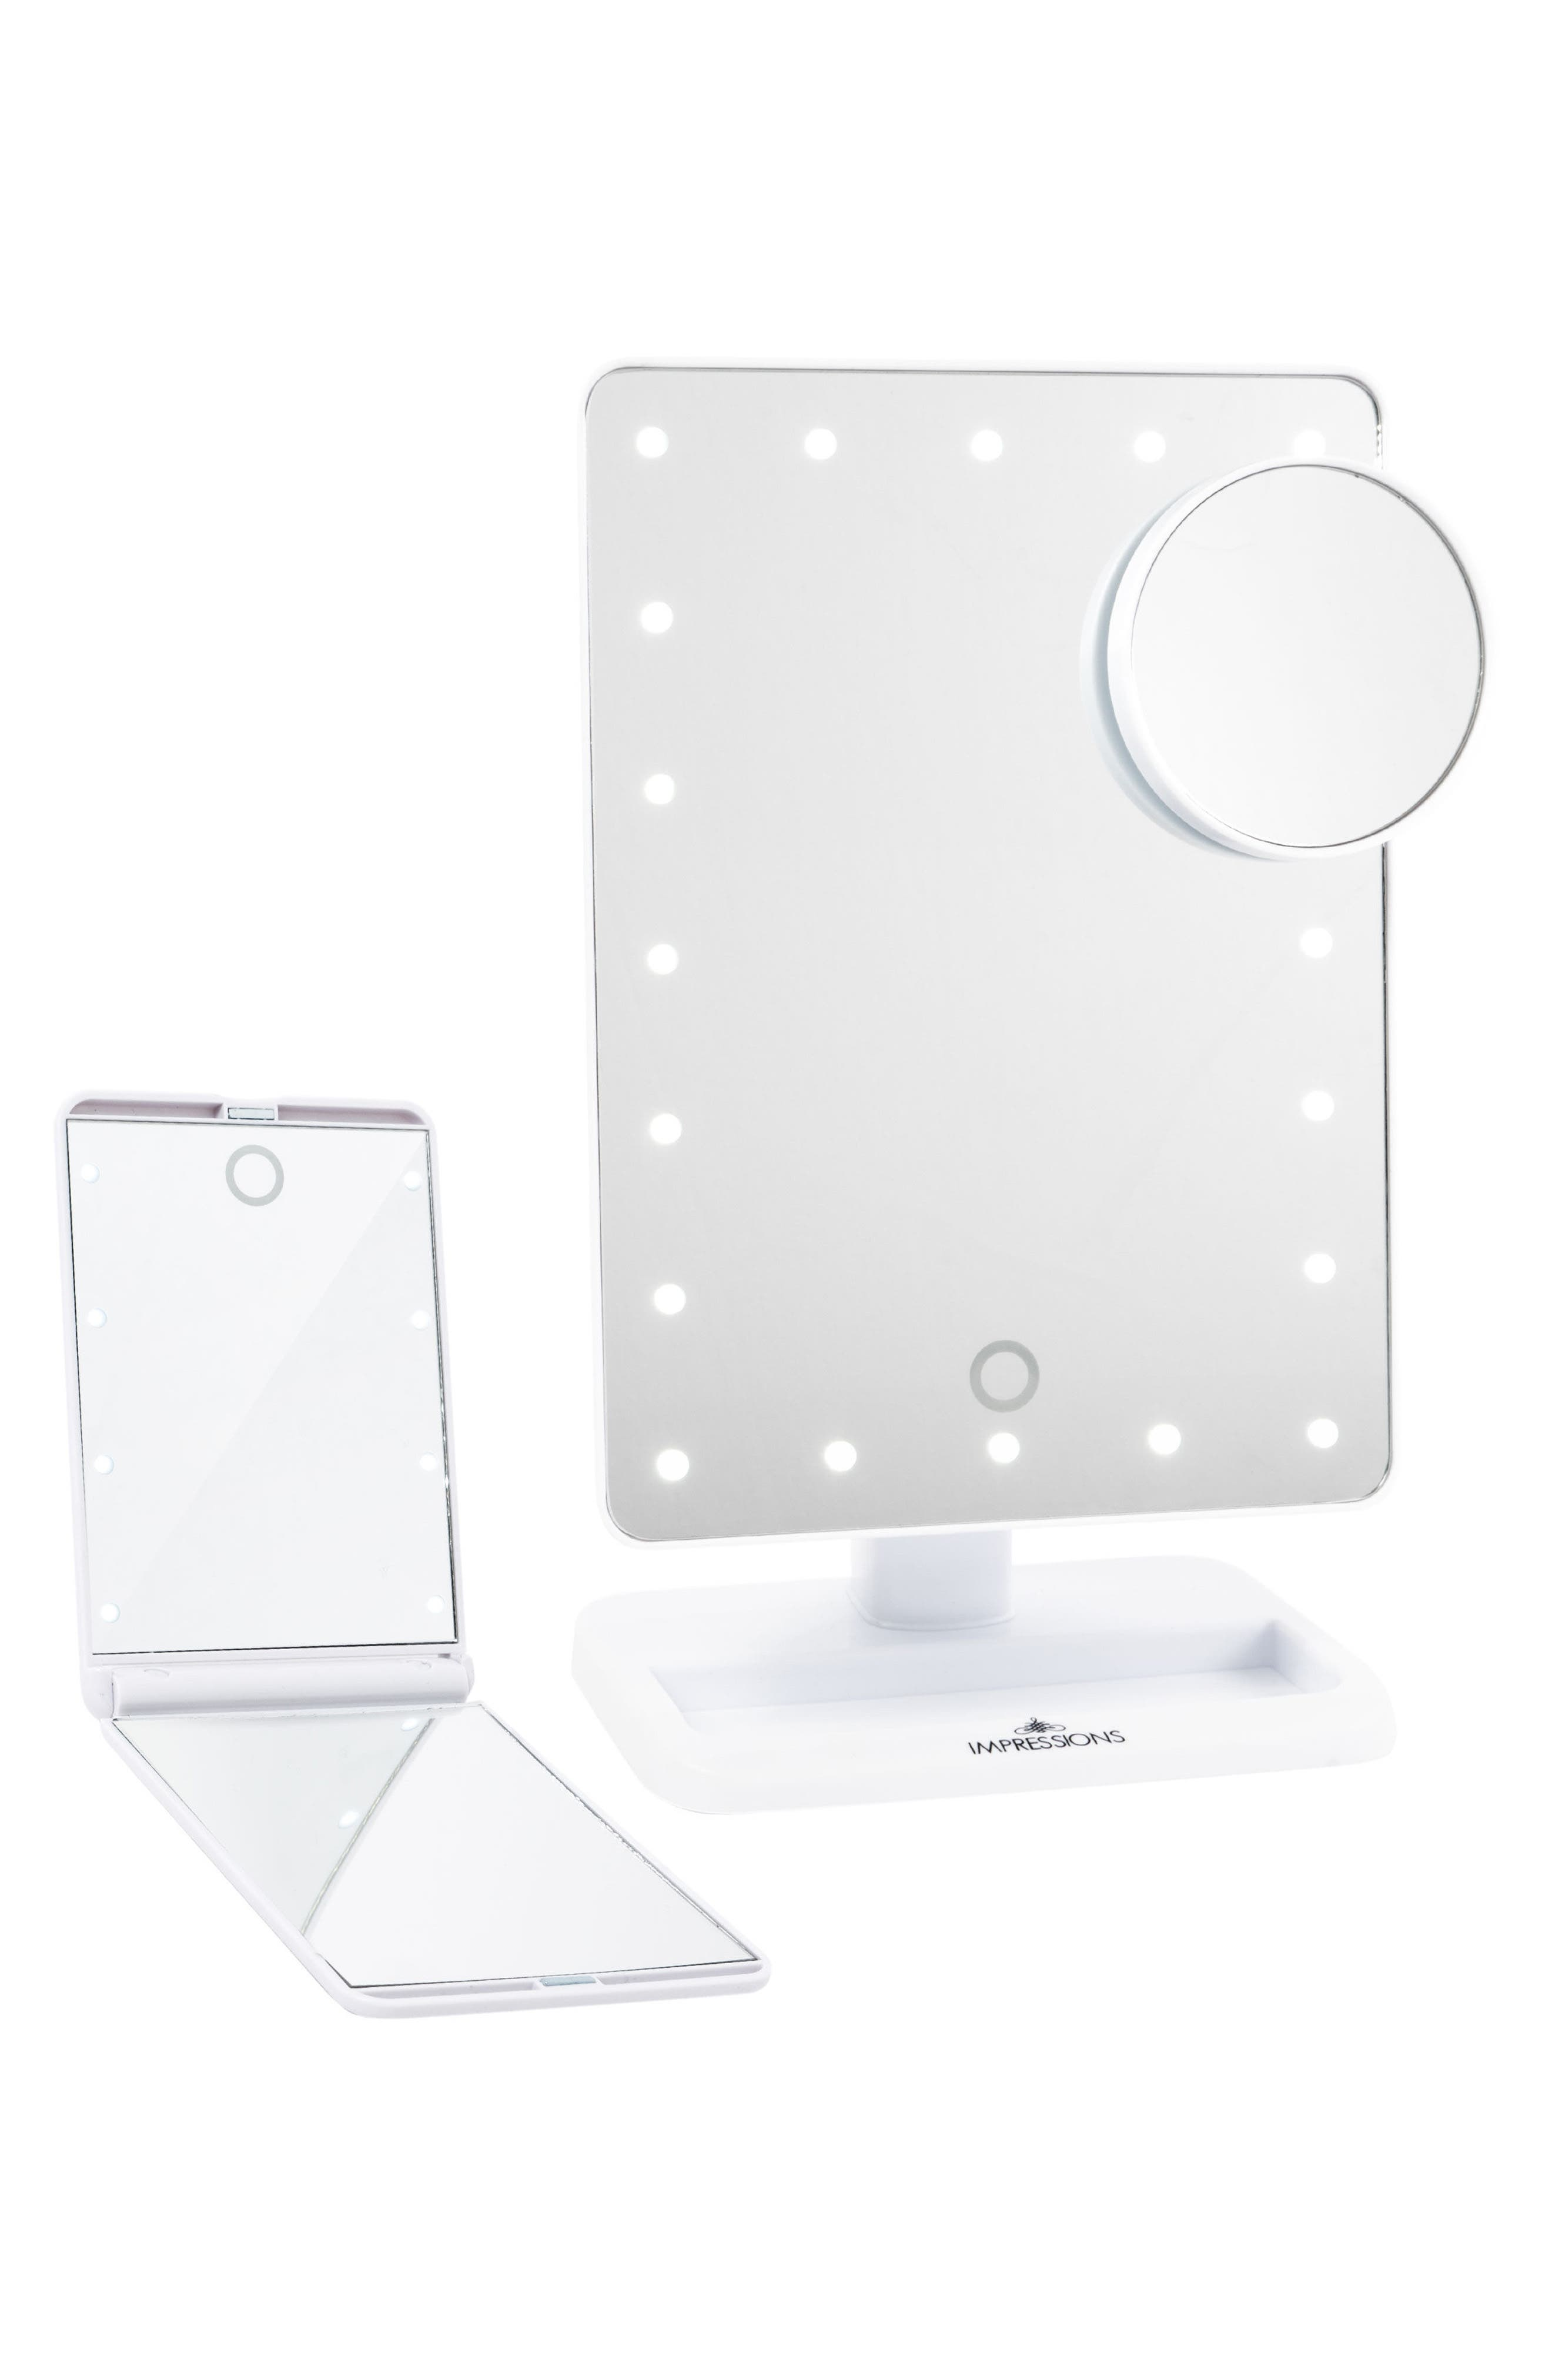 Main Image - Impressions Vanity Co. Touch XL Dimmable LED Makeup Mirror with Removable 5x Mirror & Compact Mirror